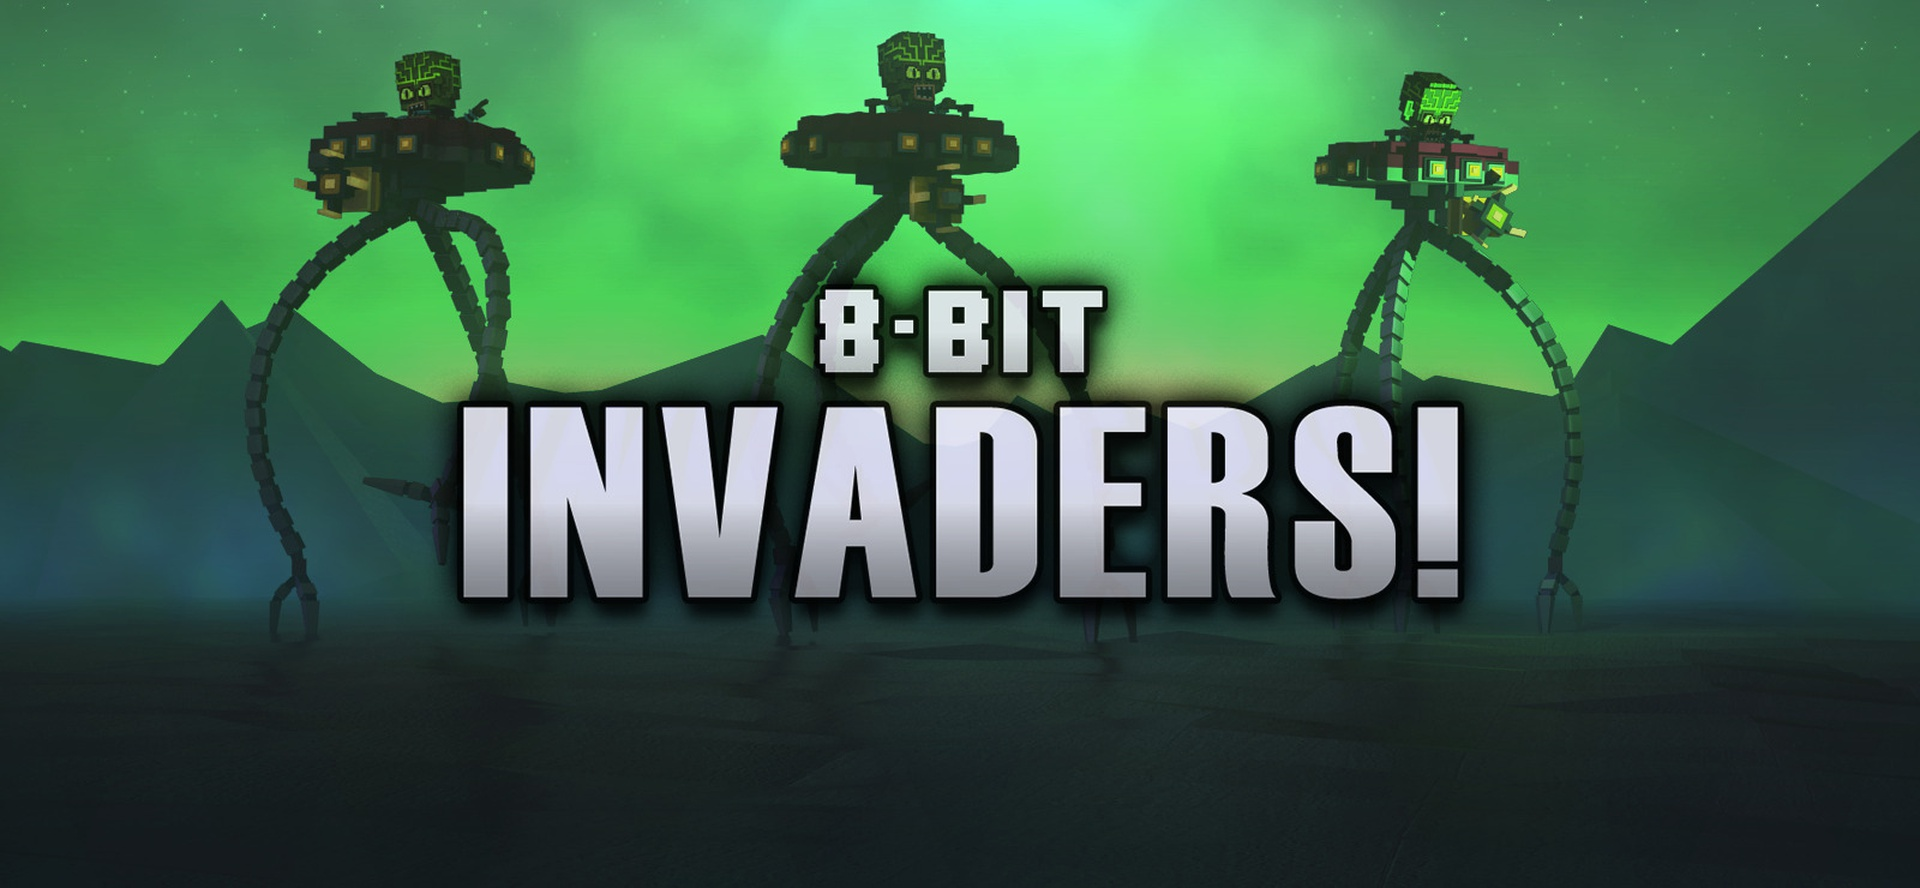 8-Bit Invaders Video